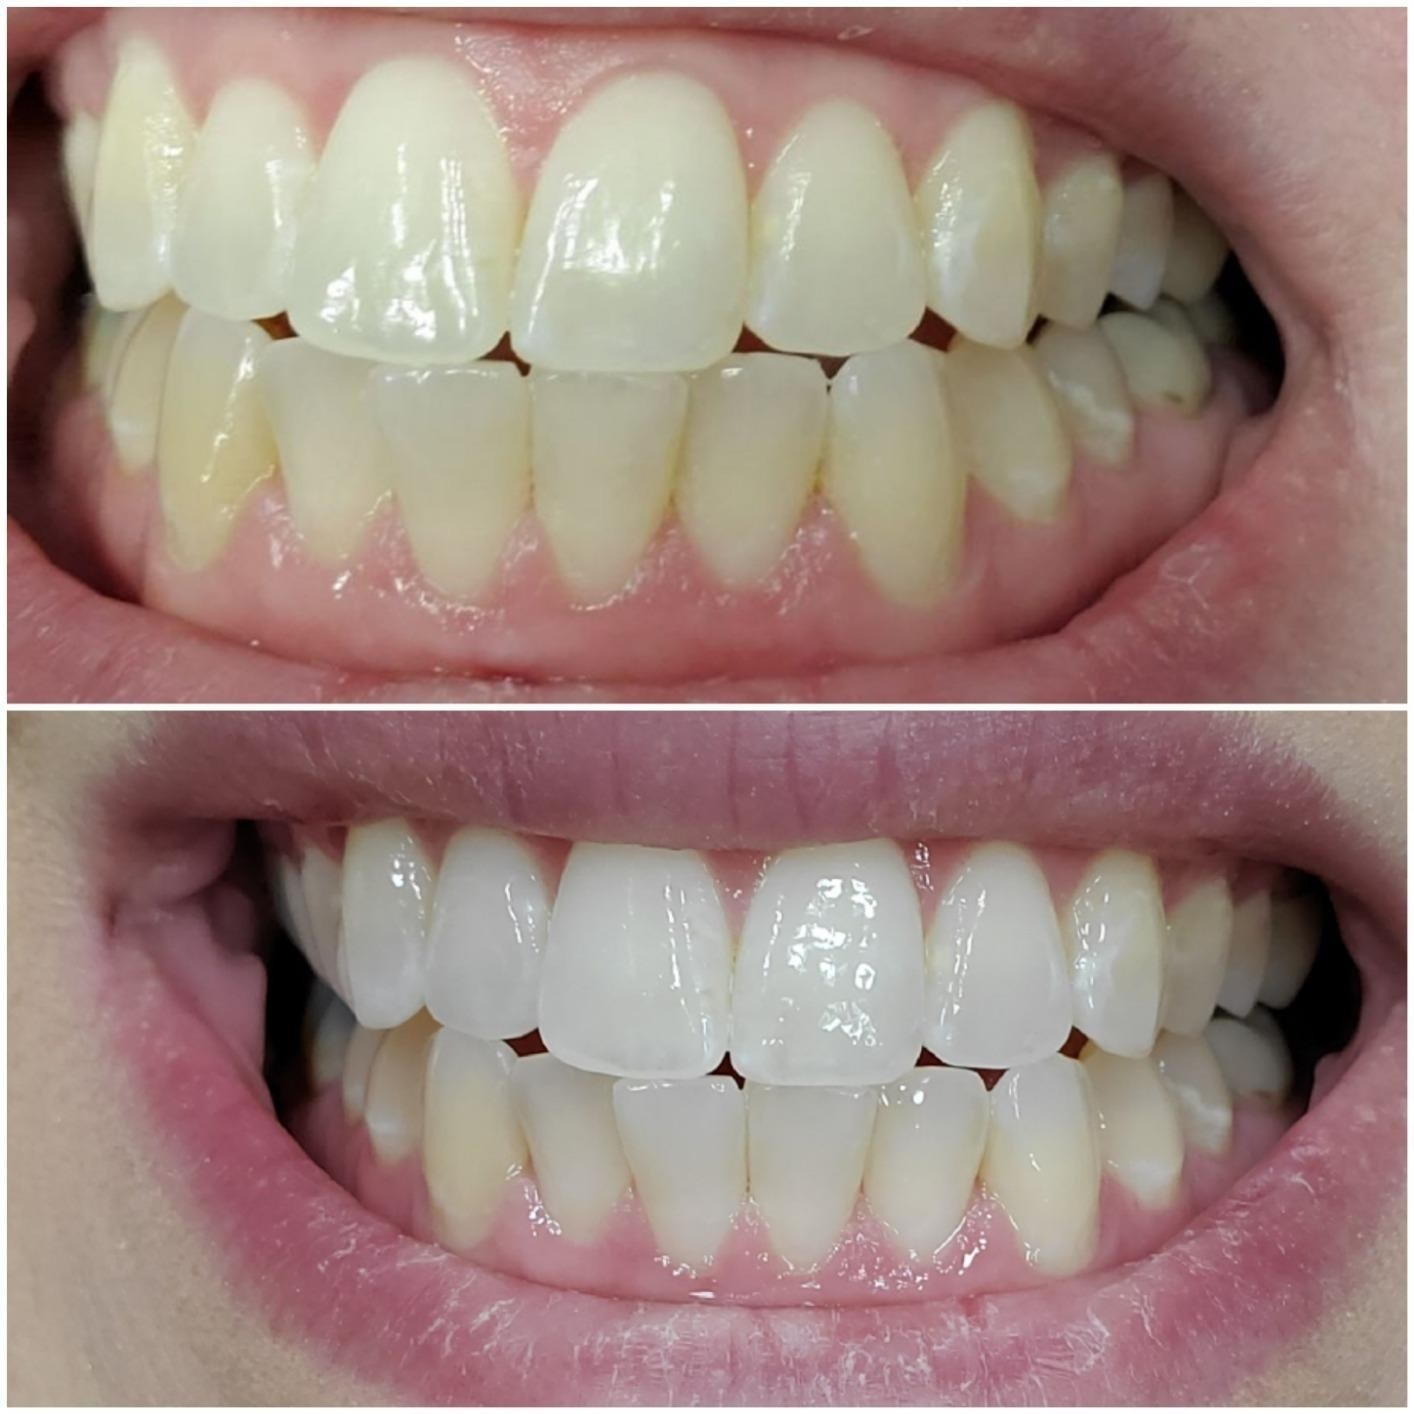 a split before and after image of a reviewers yellow teeth before the whitening pen and their teeth appearing whiter after use